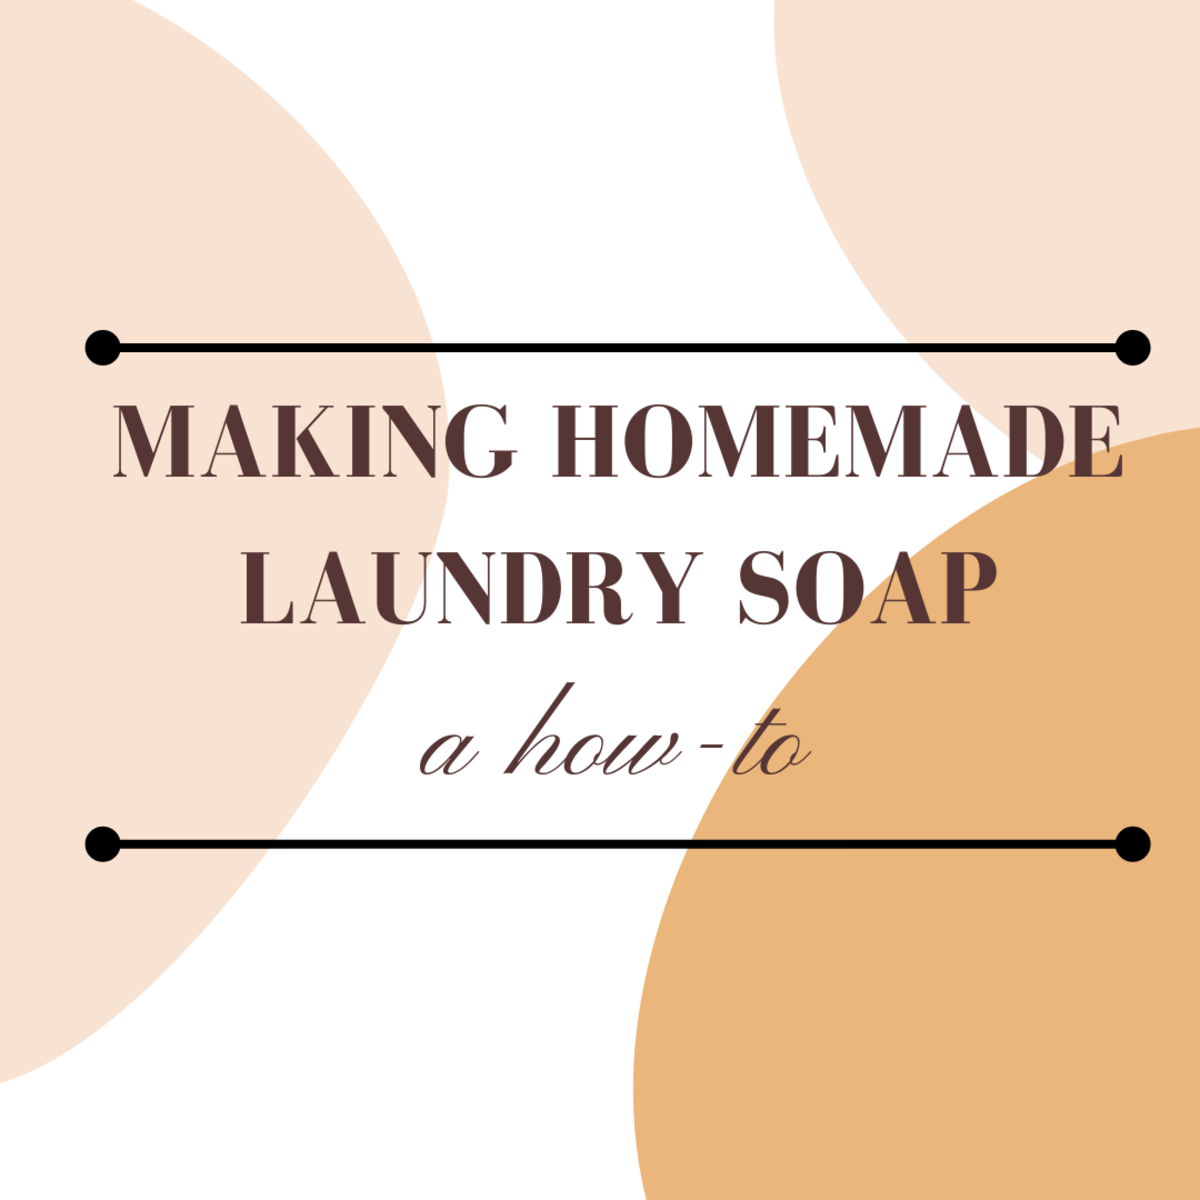 Making your own laundry soap is easy, fun, and can save you money!